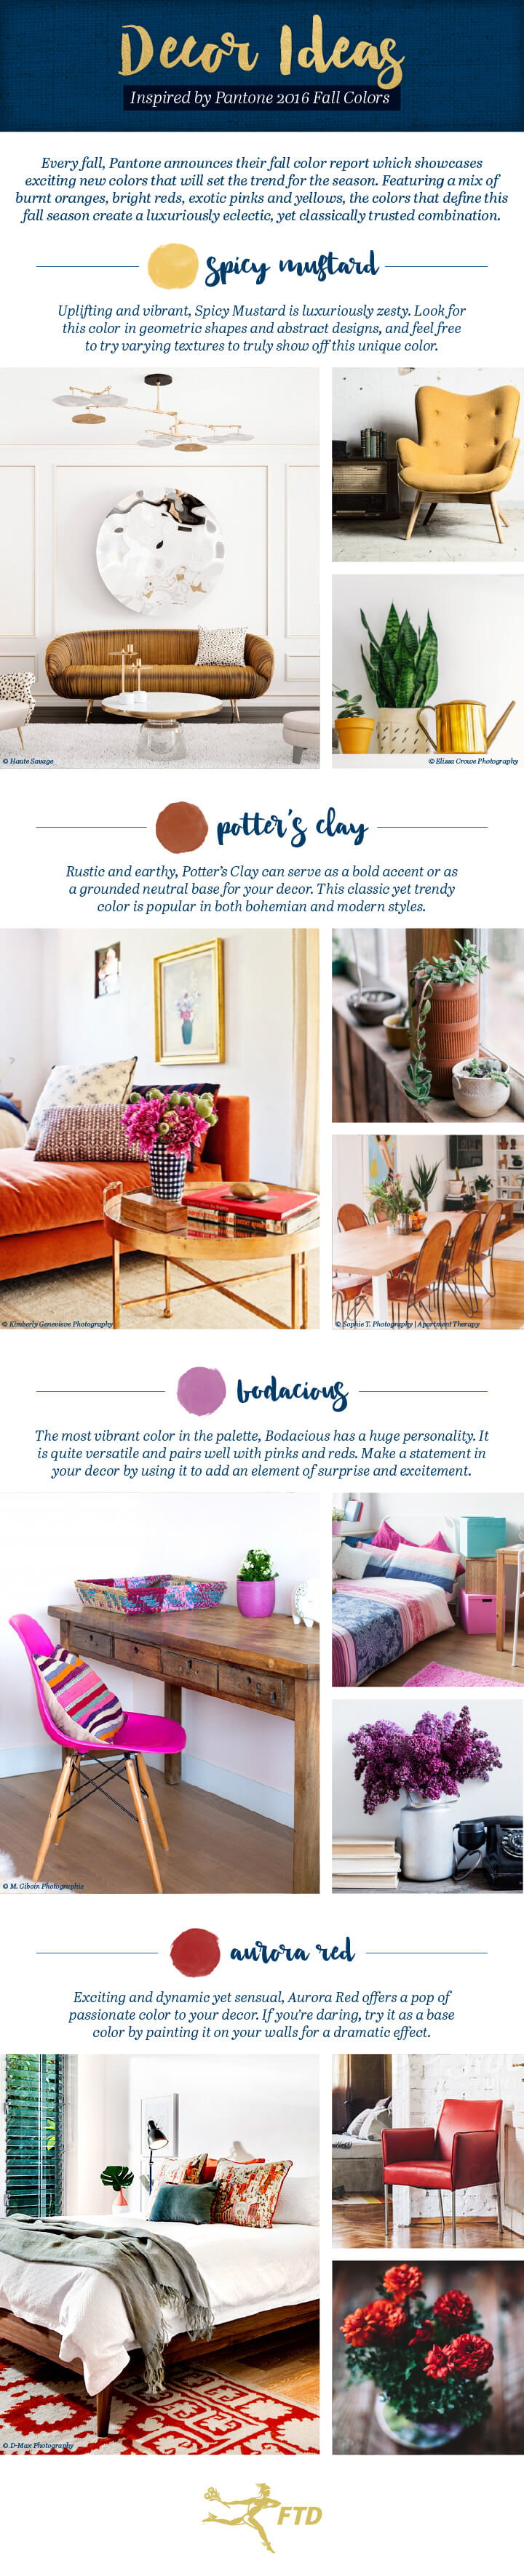 pantone fall decor ideas